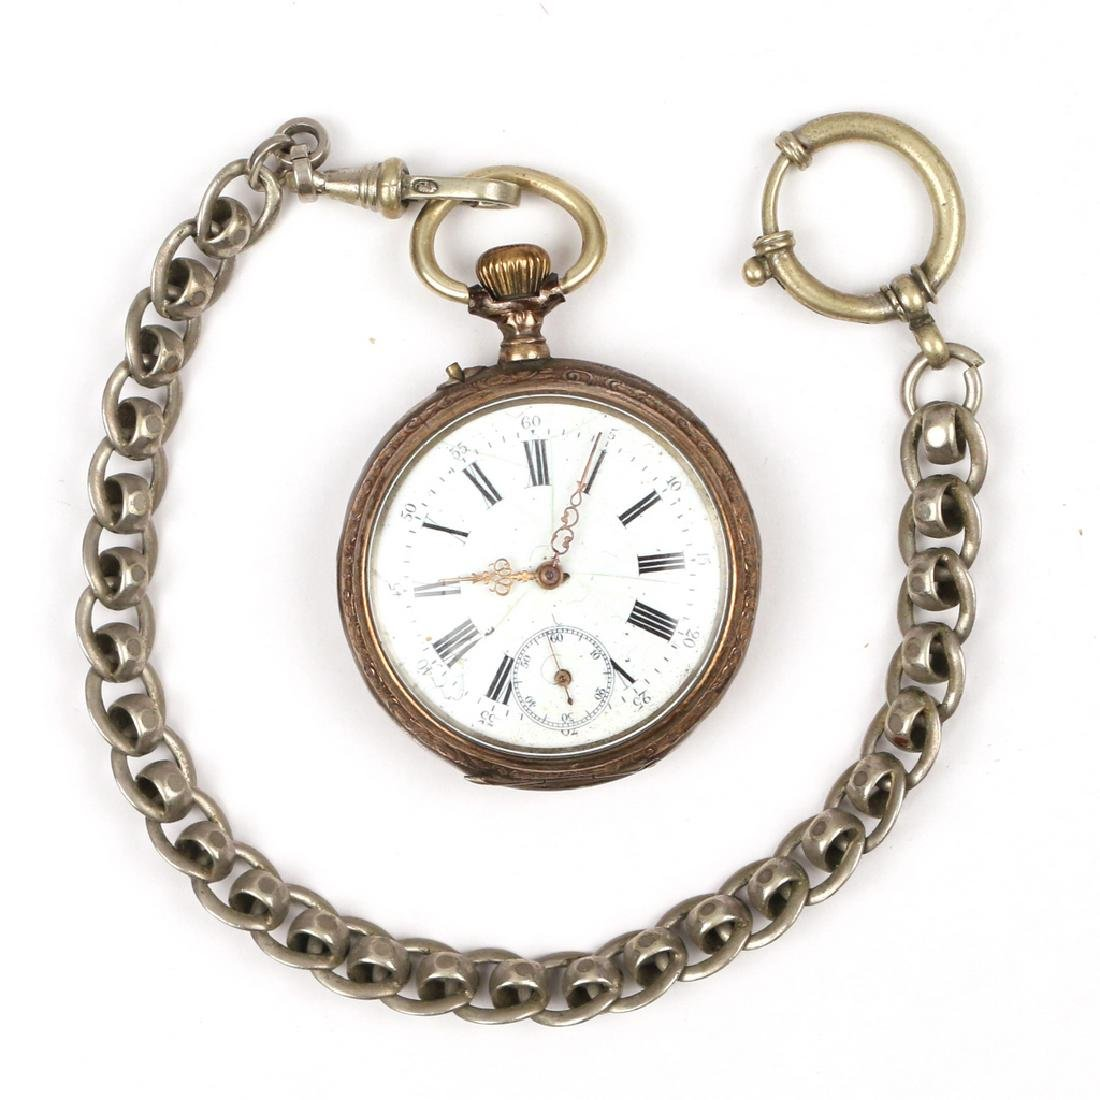 '800' SILVER OPEN FACE POCKET WATCH